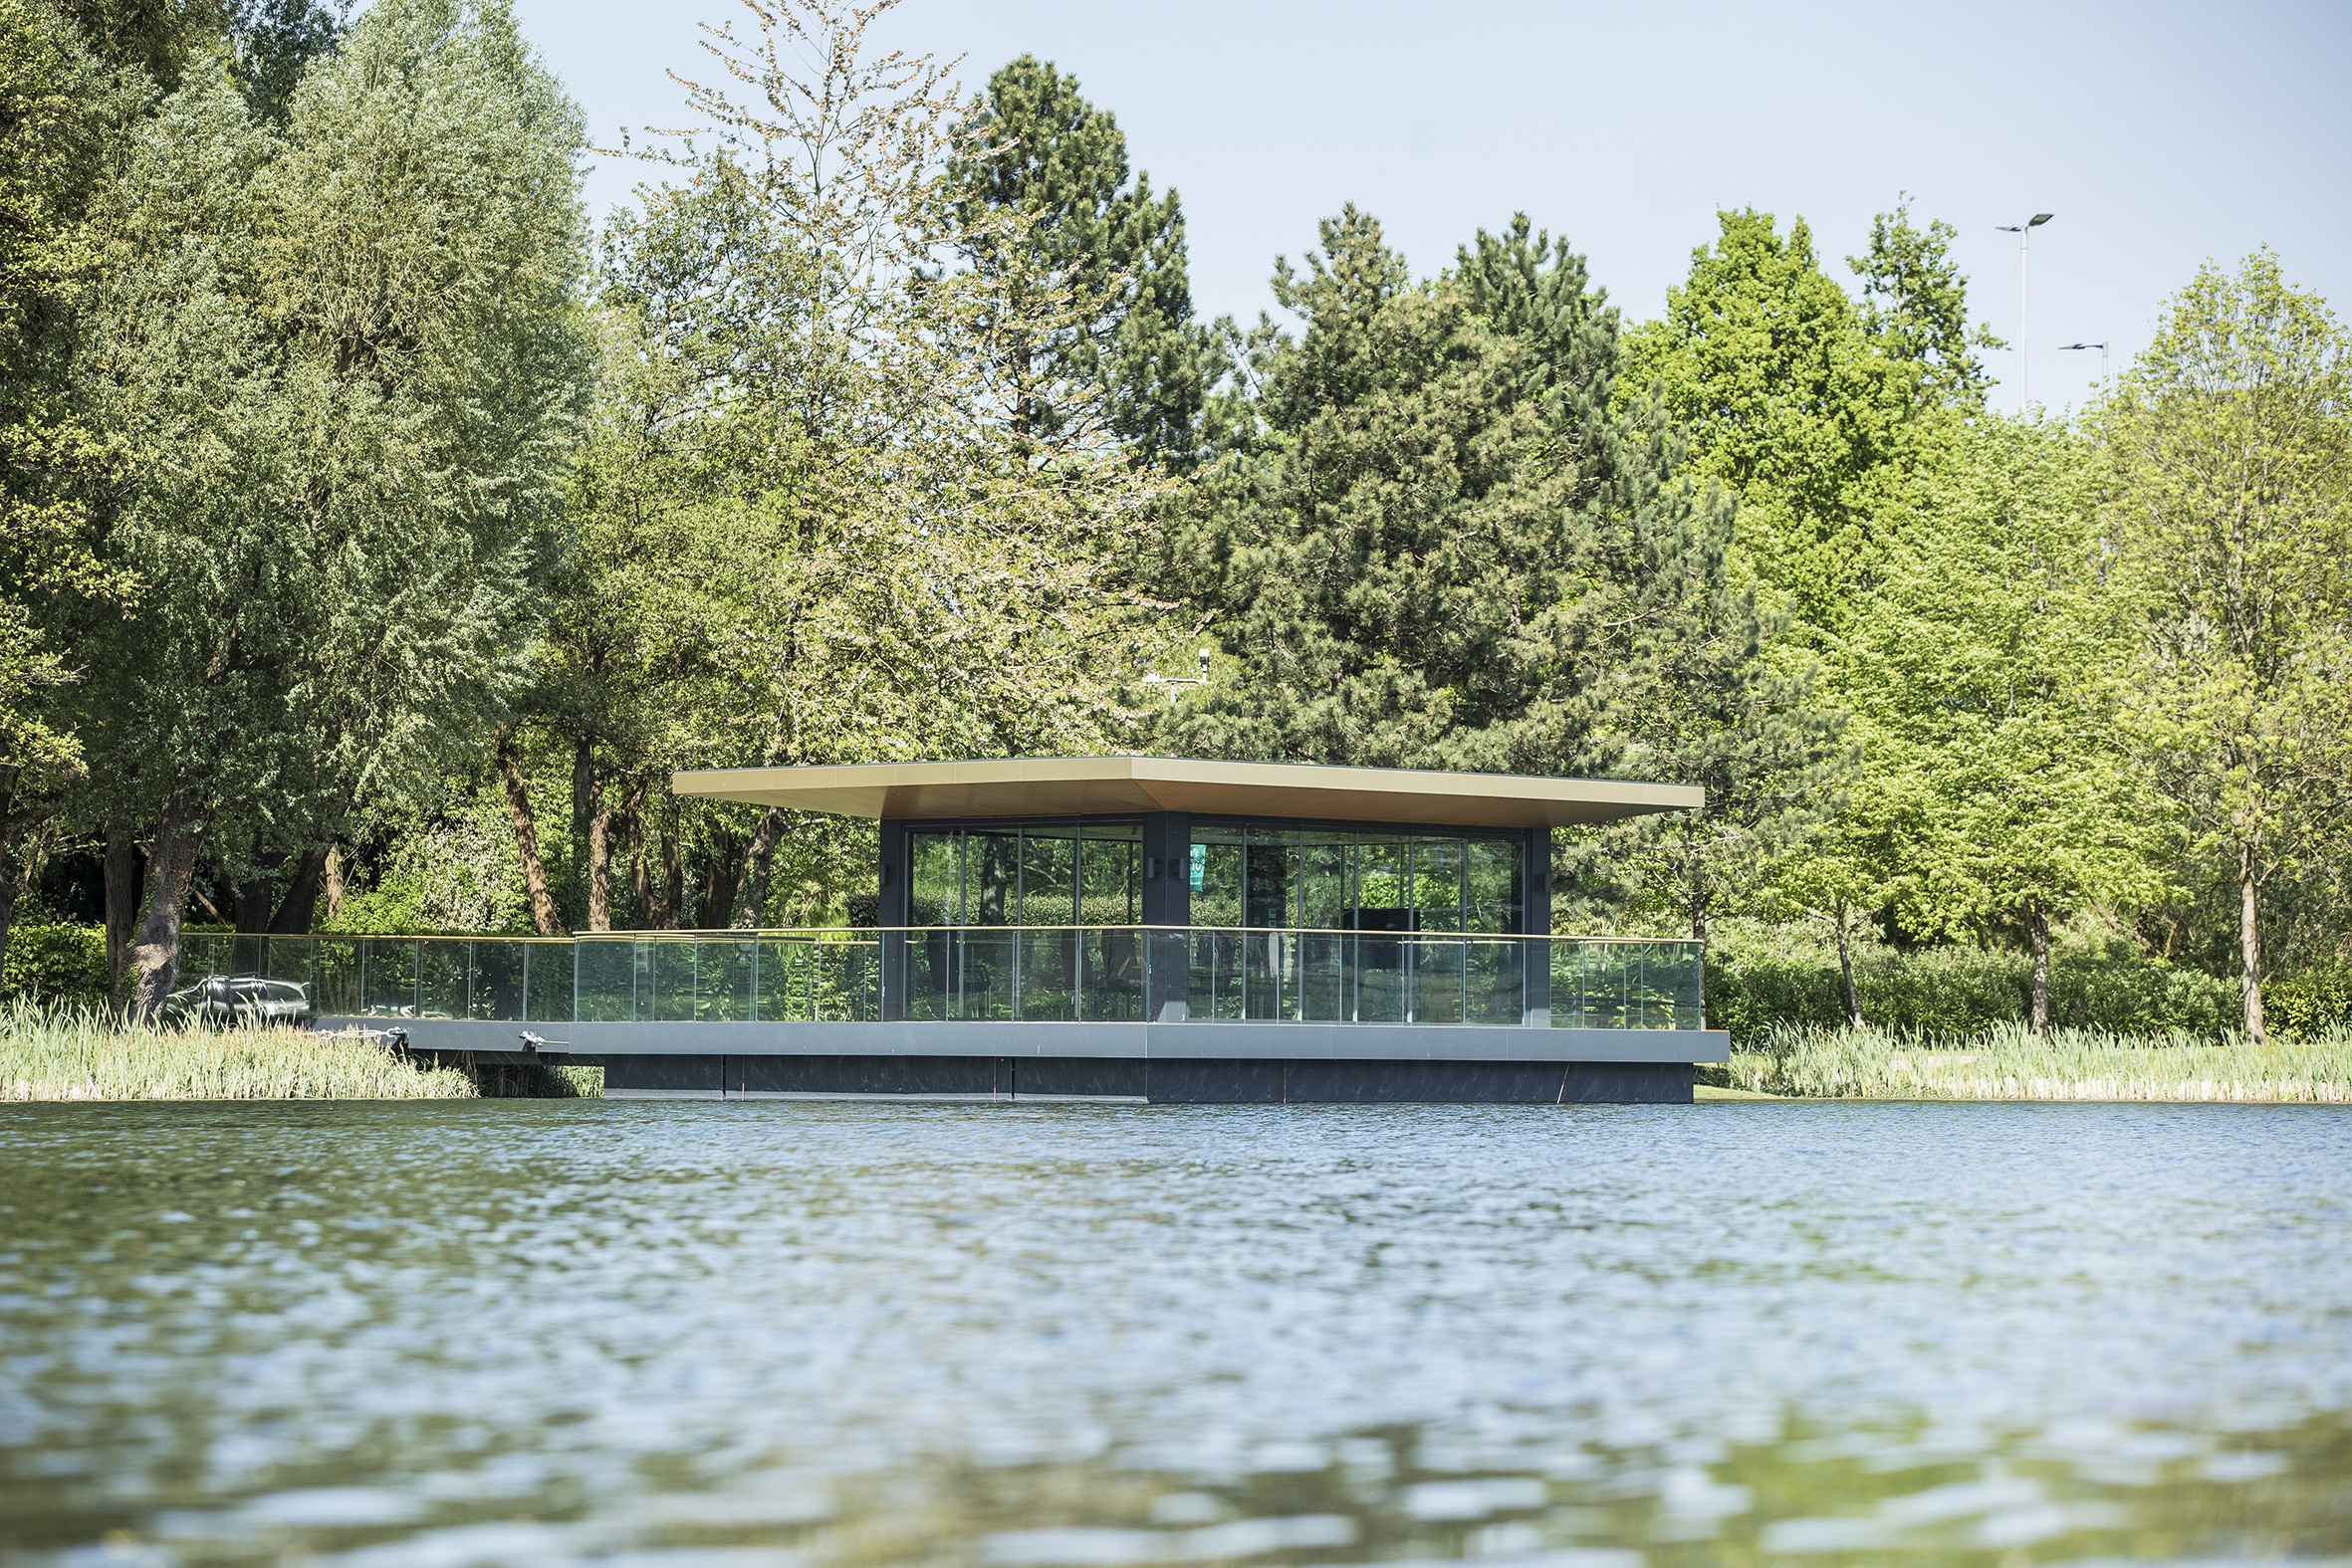 Floating Pavilion